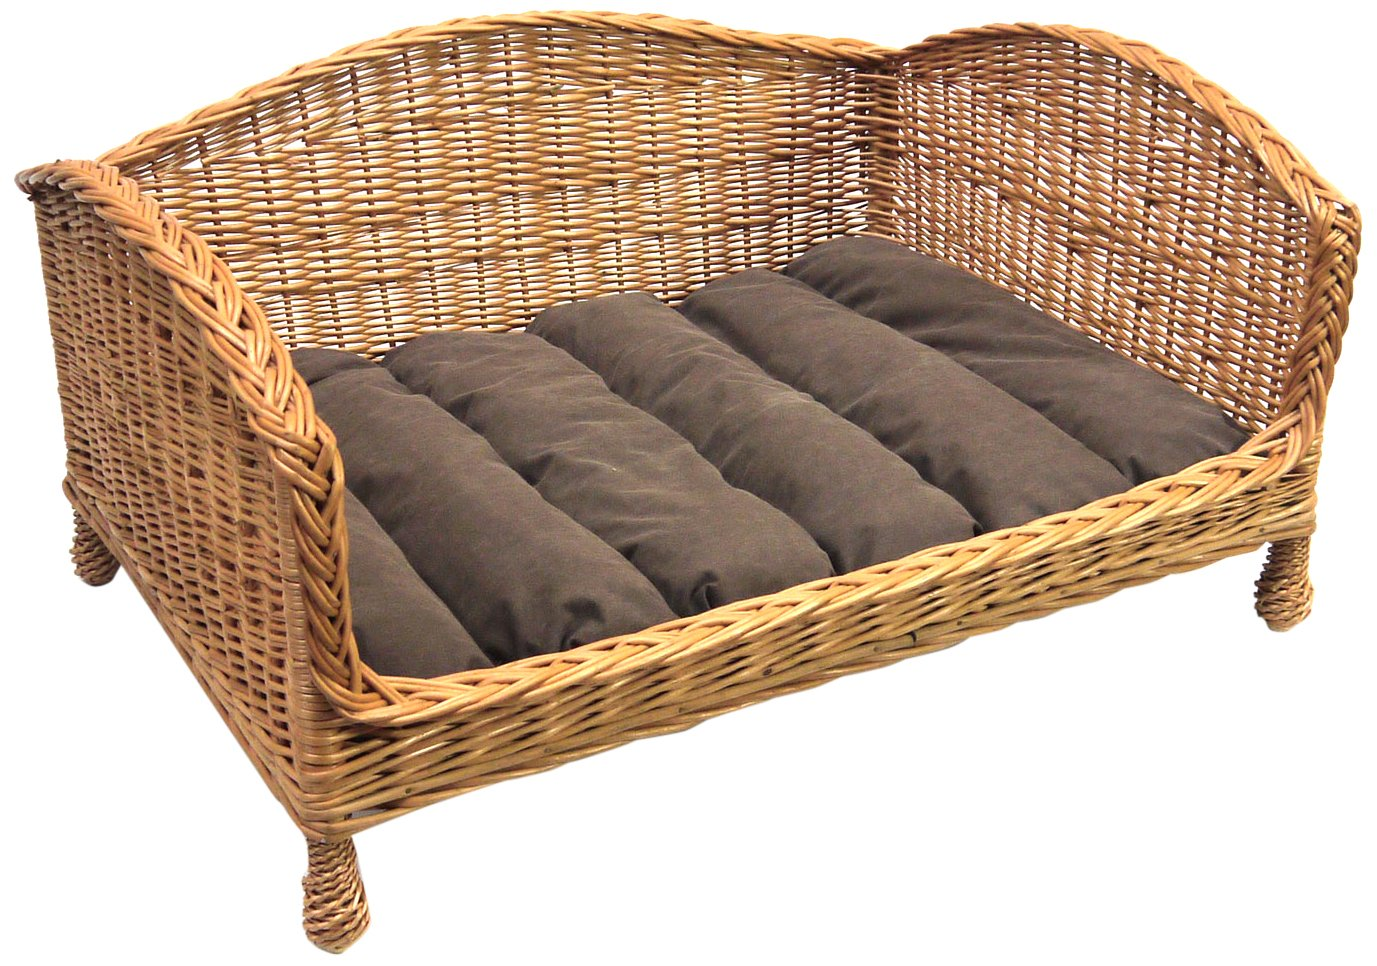 Luxury Corner Wicker Dog Bed with Cushion, Extra Large